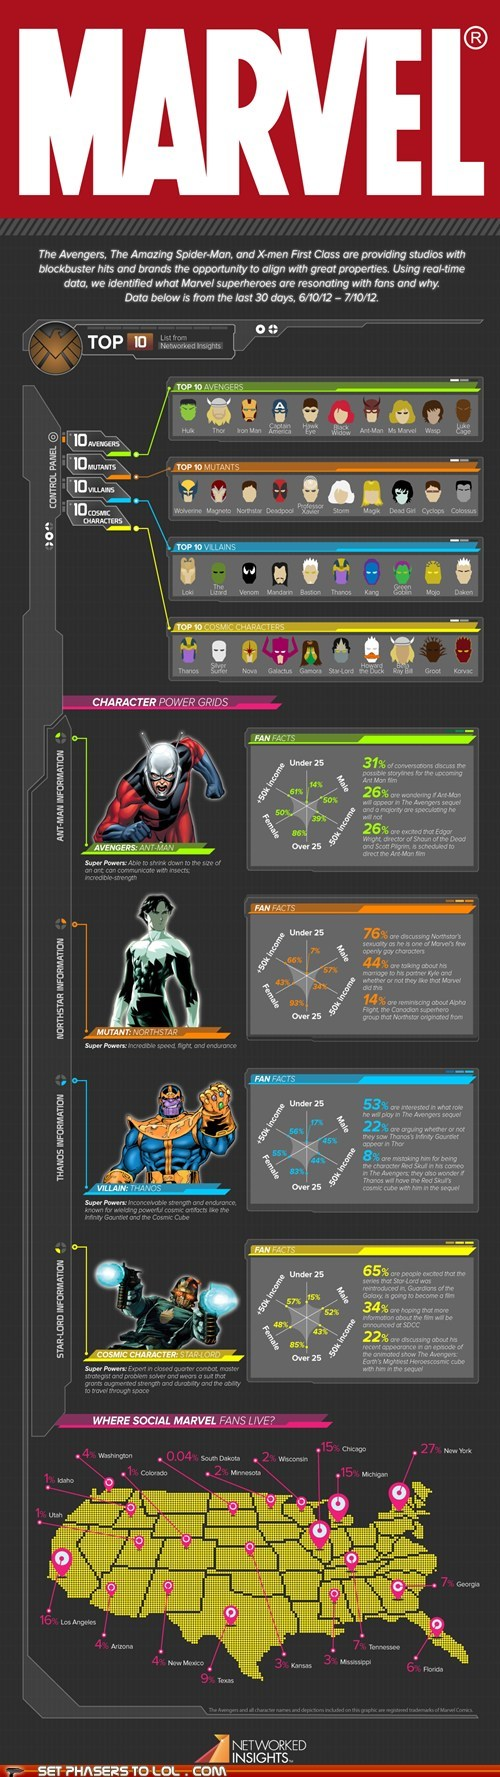 avengers infographic marvel mutants popularity Spider-Man superheroes the lizard x men - 6508133120